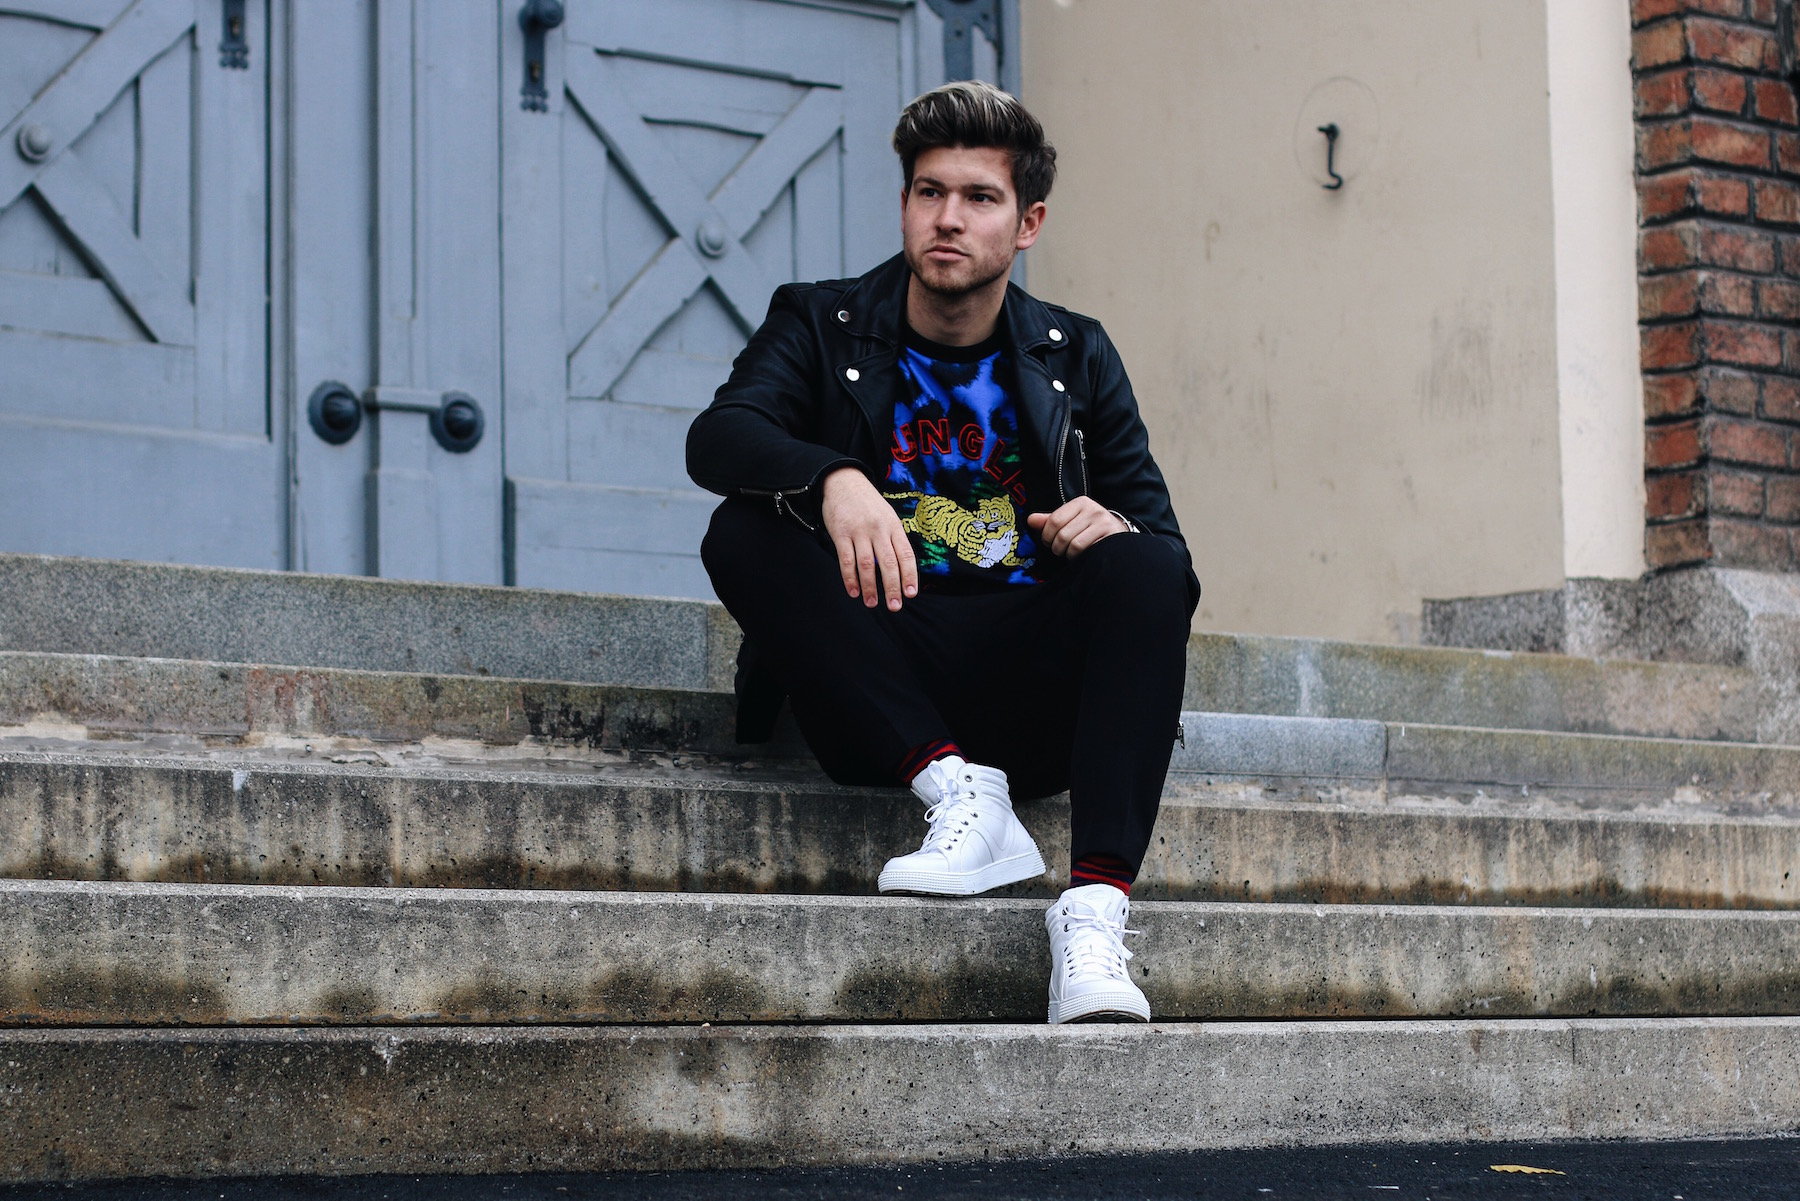 Camel Active Cocoon Sneakers styled with Kenzo x H&M collection_Meanwhile in Awesometown Austrian Mens Fashion and Lifestyle Blogger10